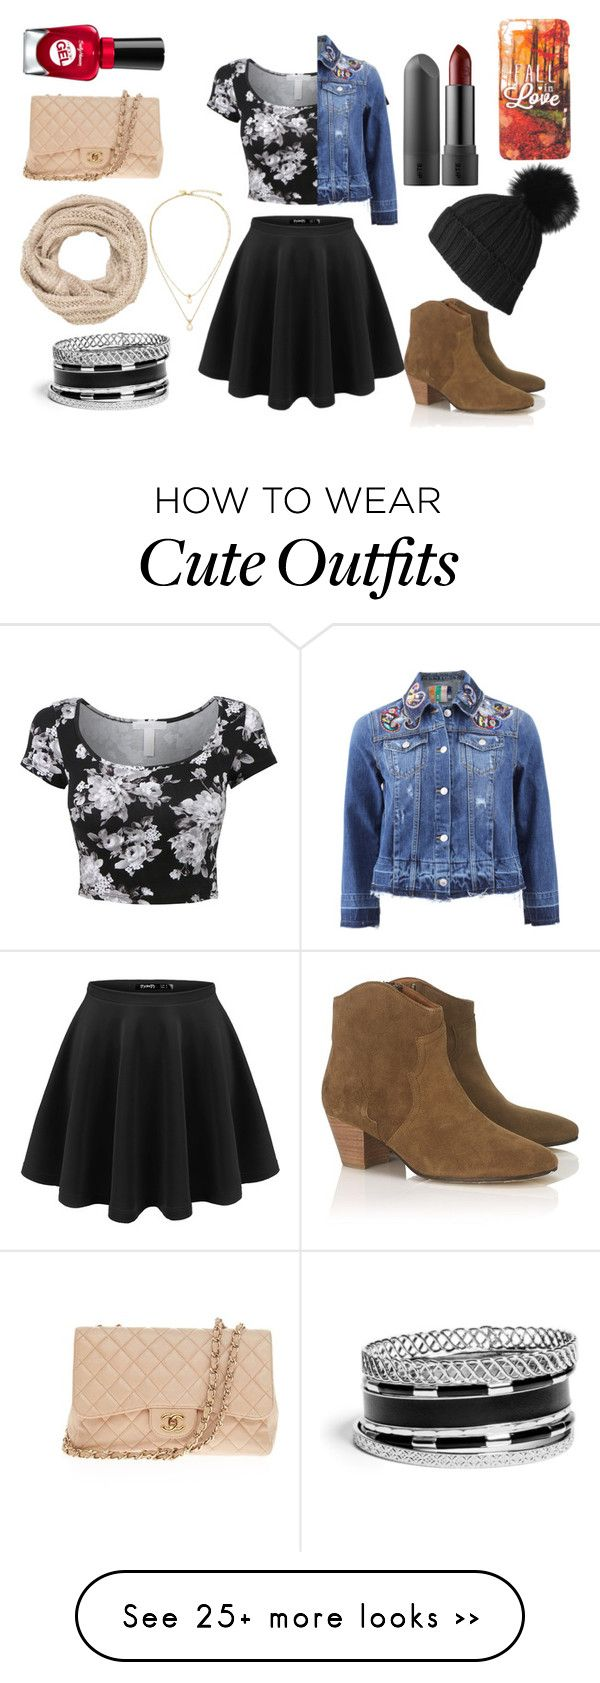 """cute outfit"" by the-tumblr-girl on Polyvore featuring MSGM, Isabel Marant, GUESS, Kate Spade, Chanel, Sally Hansen and maurices"